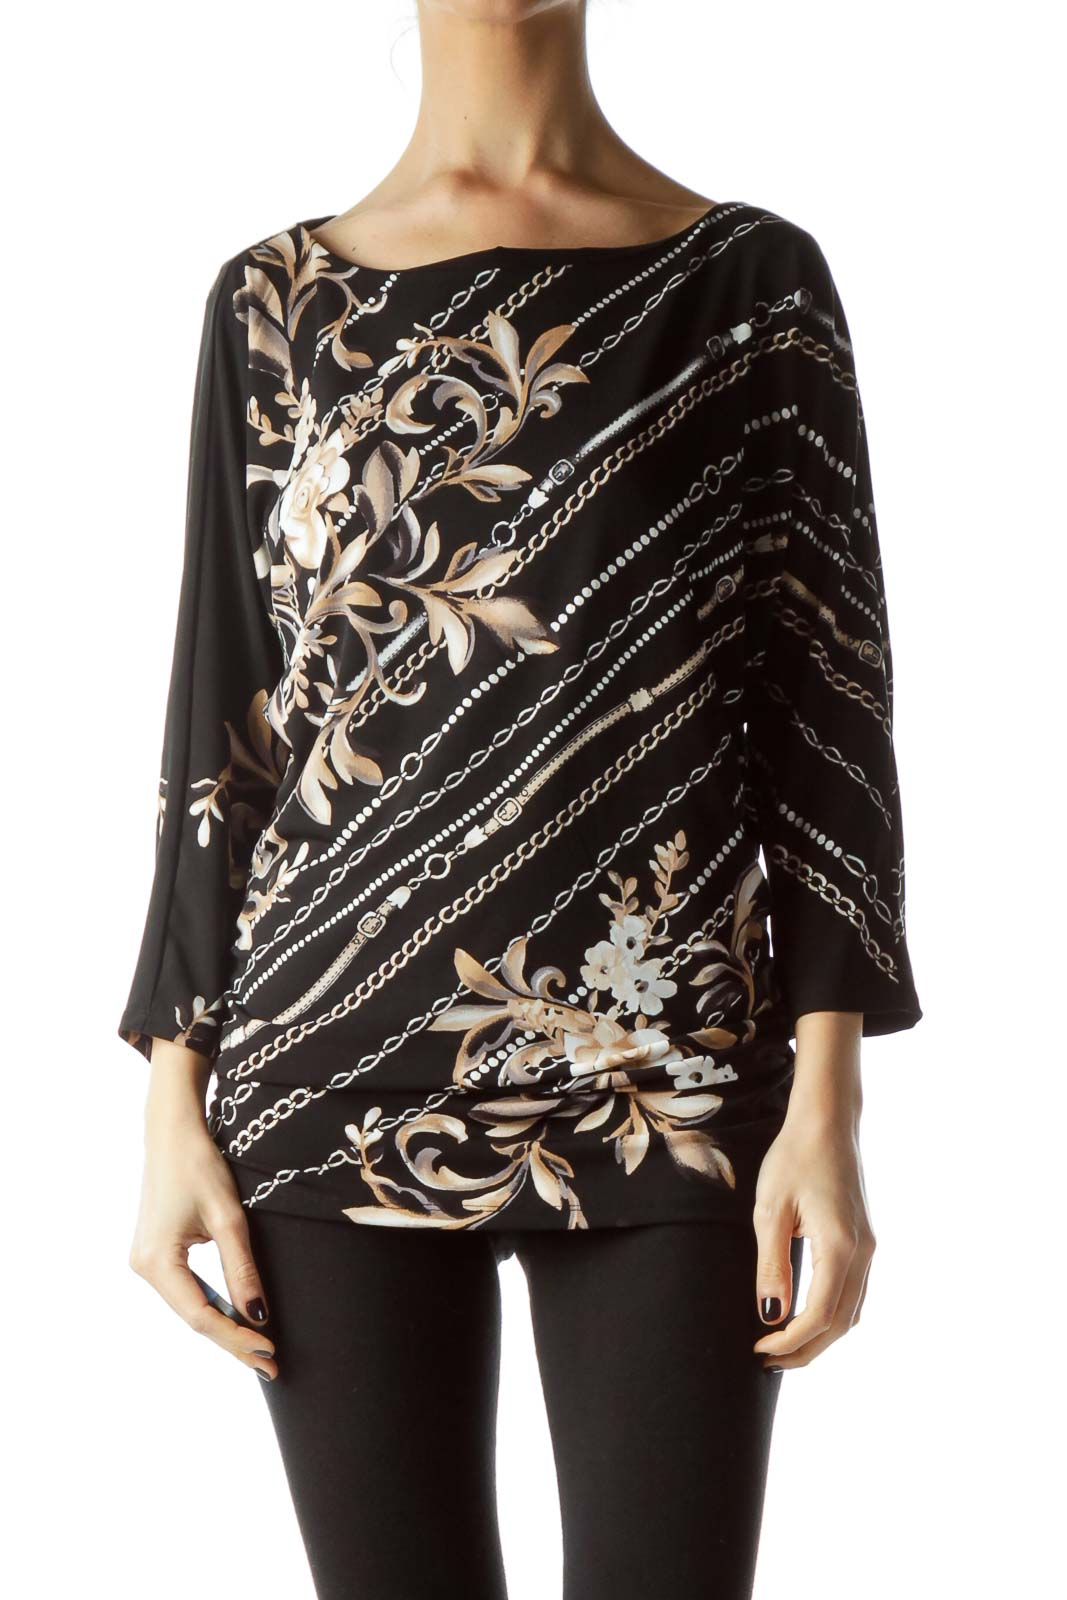 Black Beige White Floral and Chain Print Top